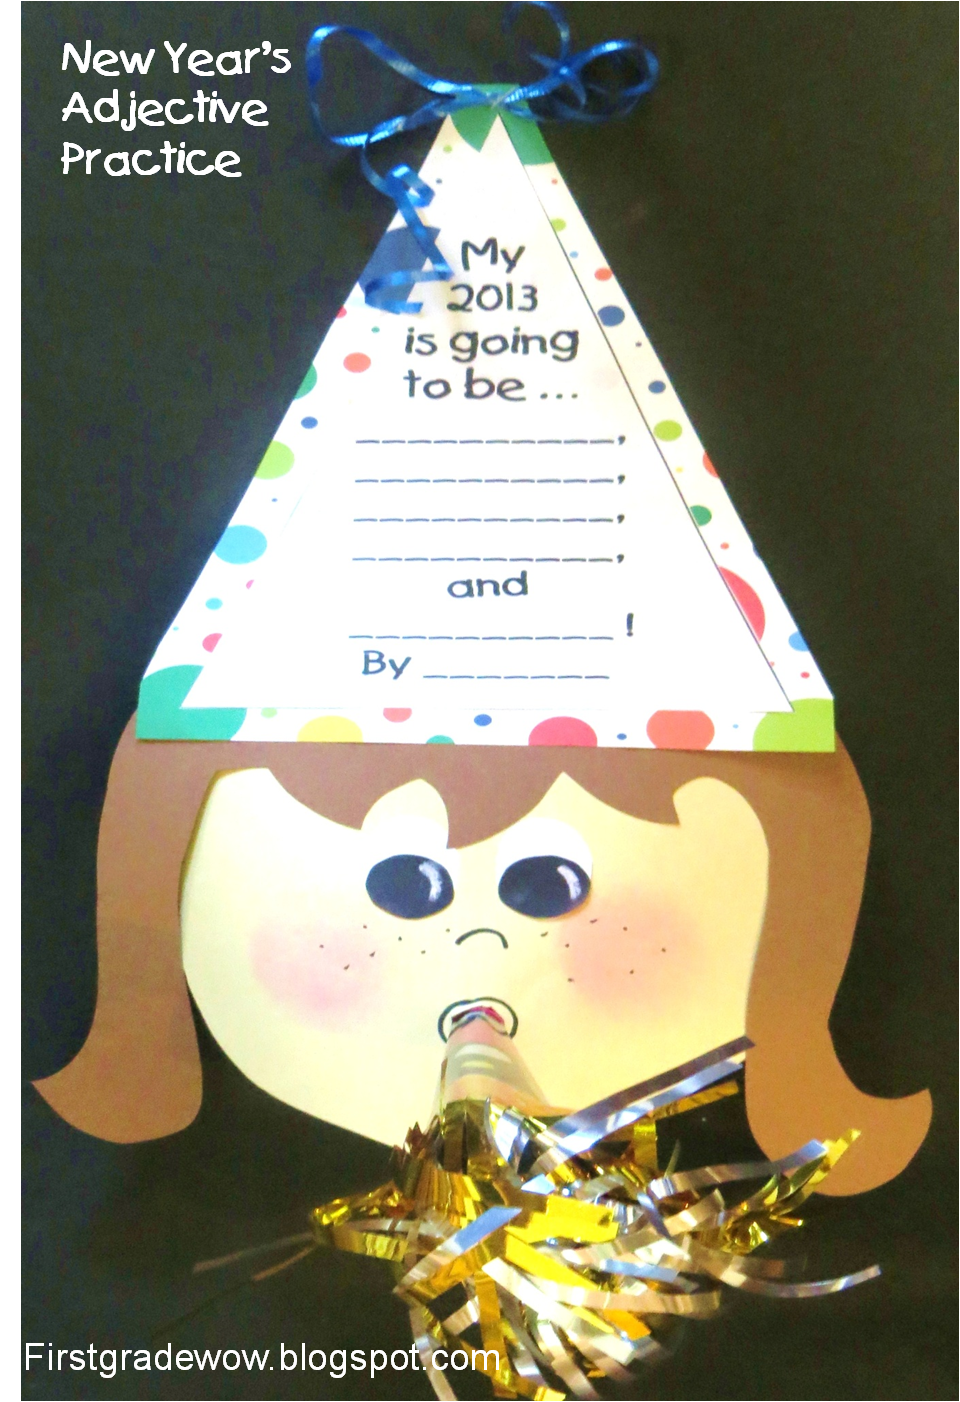 First Grade Wow: Happy New Year! (a little early:)) | Christmas classroom, Winter crafts for ...